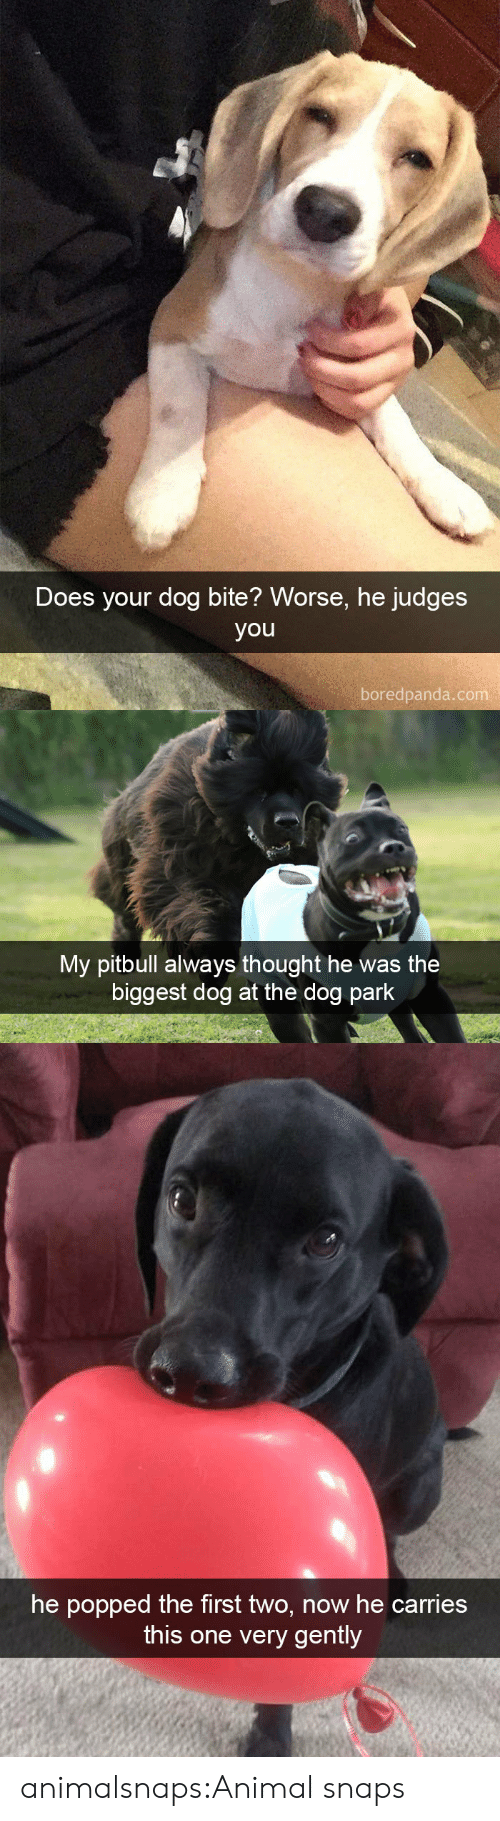 Dog Park: Does your dog bite? Worse, he judges  you  boredpanda.com   My pitbull always thought he was the  biggest dog at the dog park   he popped the first two, now he carries  this one very gently animalsnaps:Animal snaps